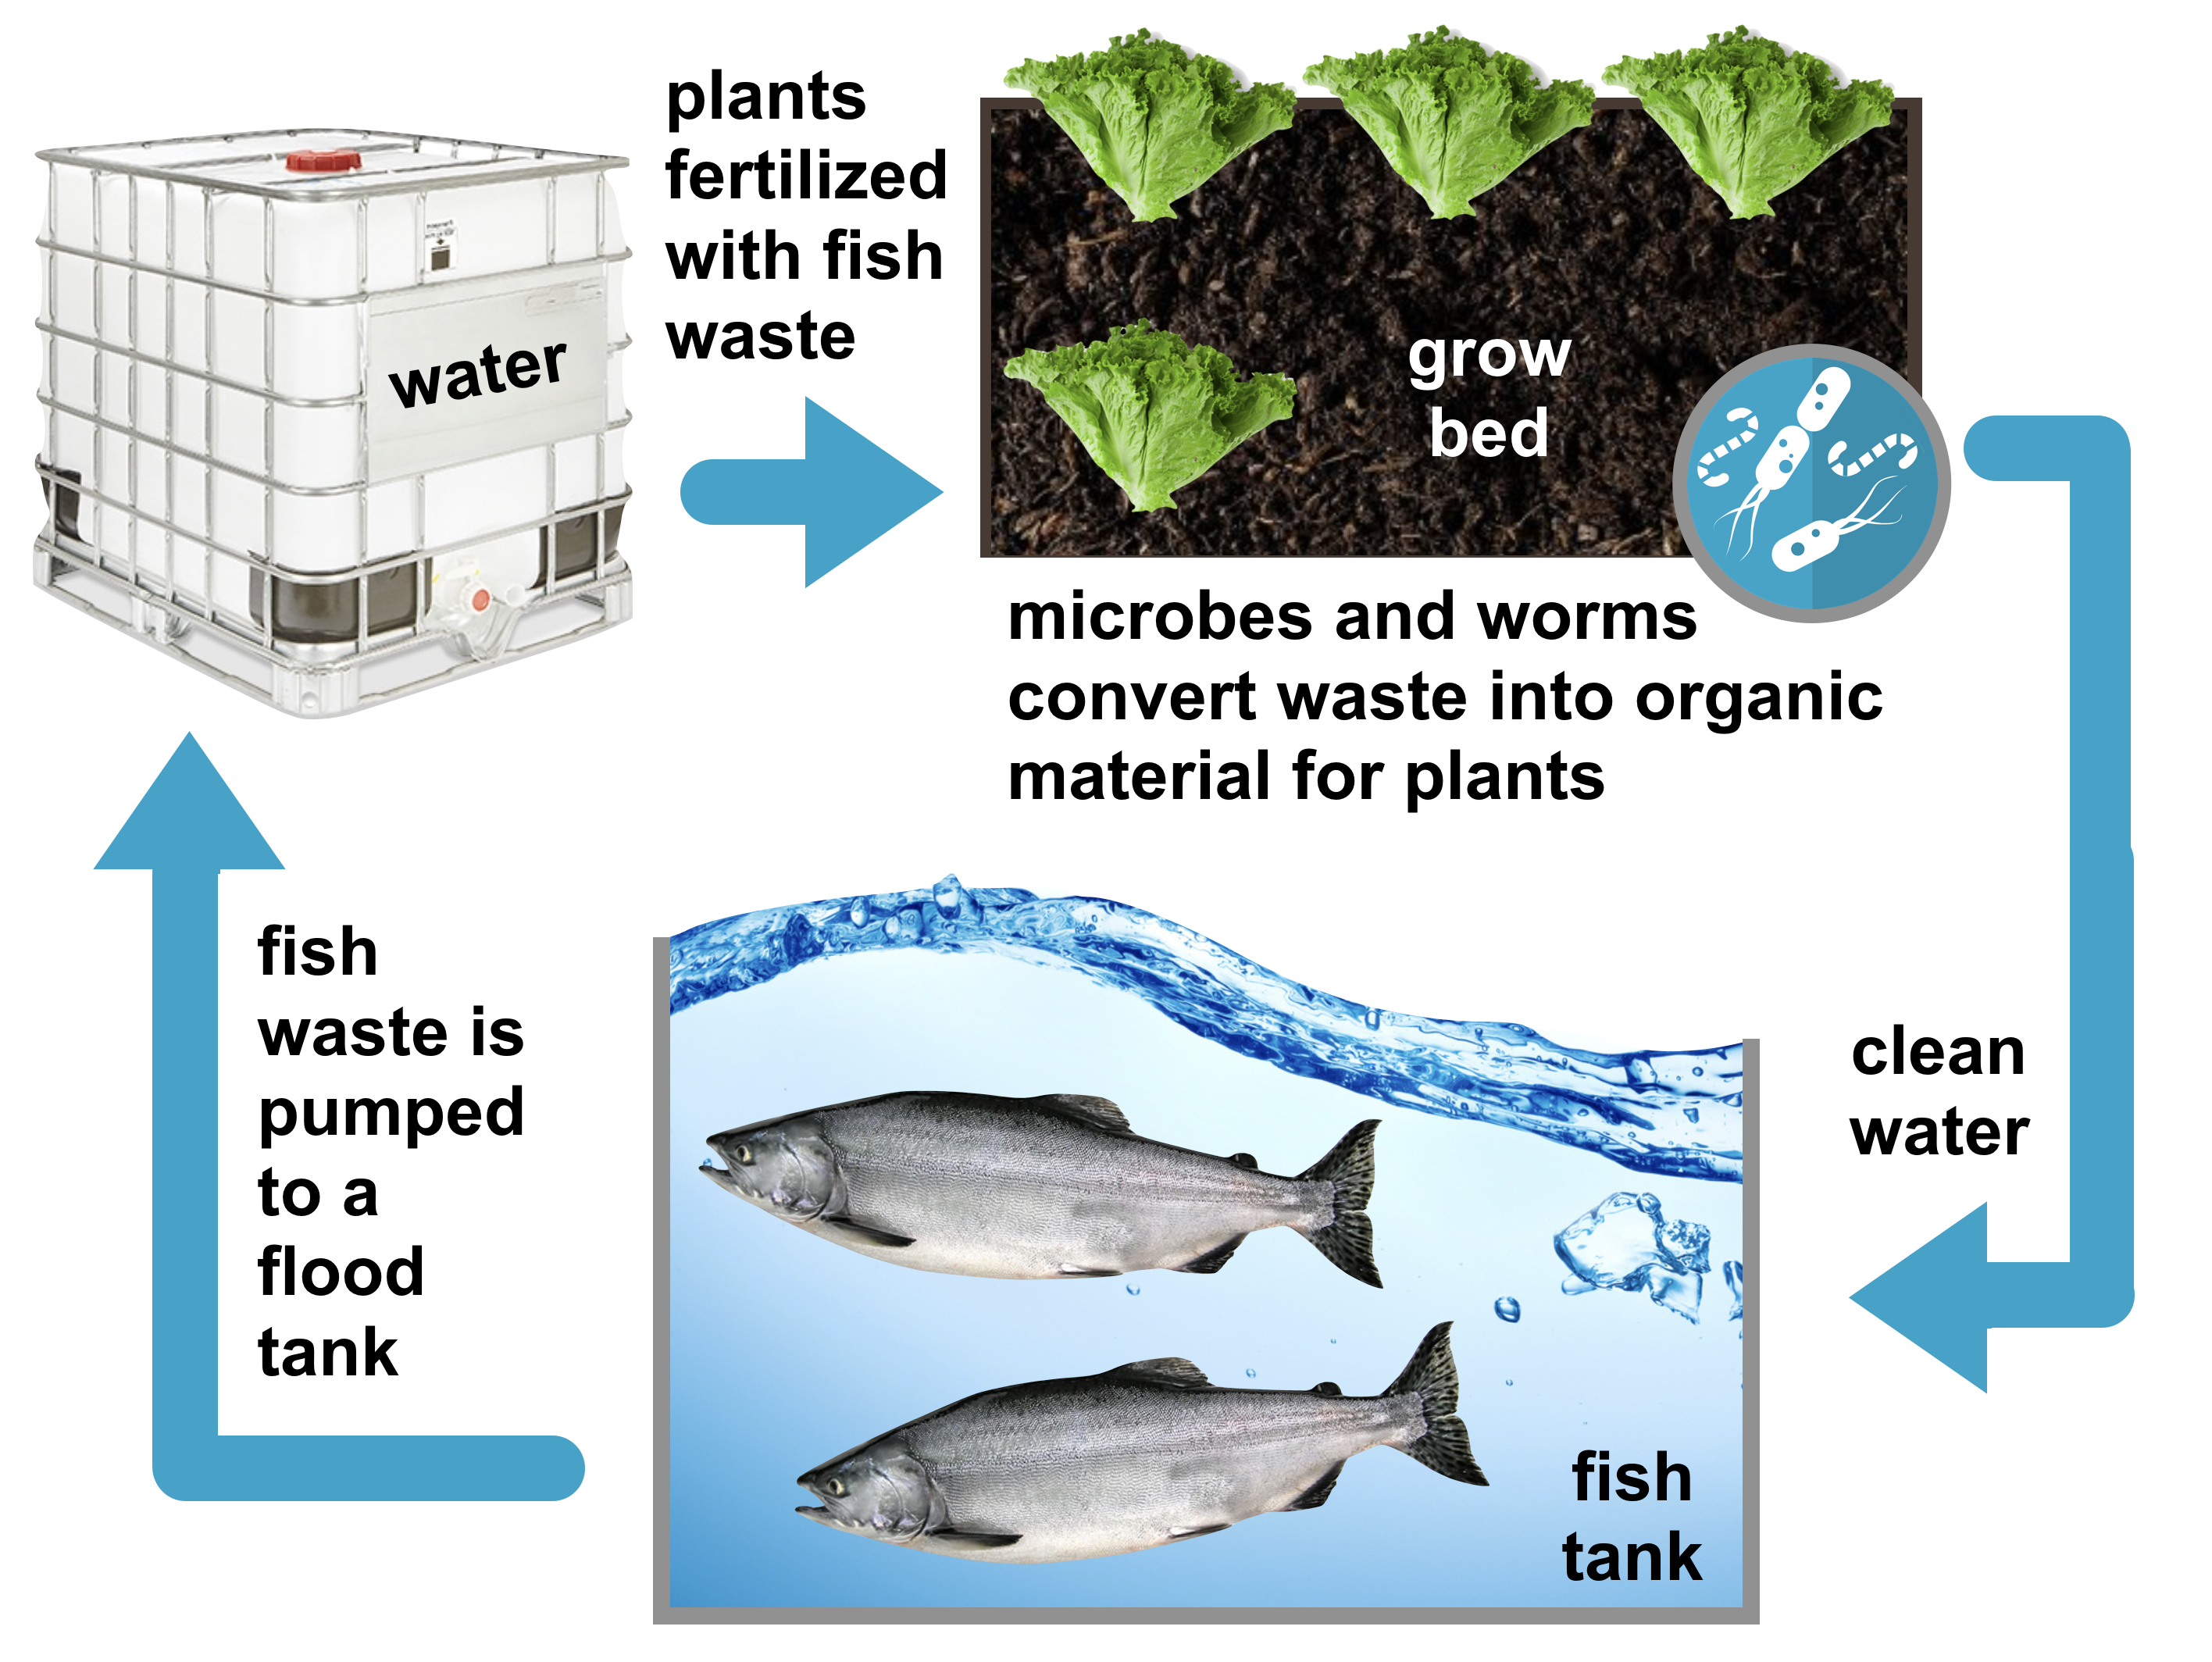 graphic showing the flow of an aquaponics system including the use of plants that have been fertilized by fish waste to clean the water of the fish tanks.